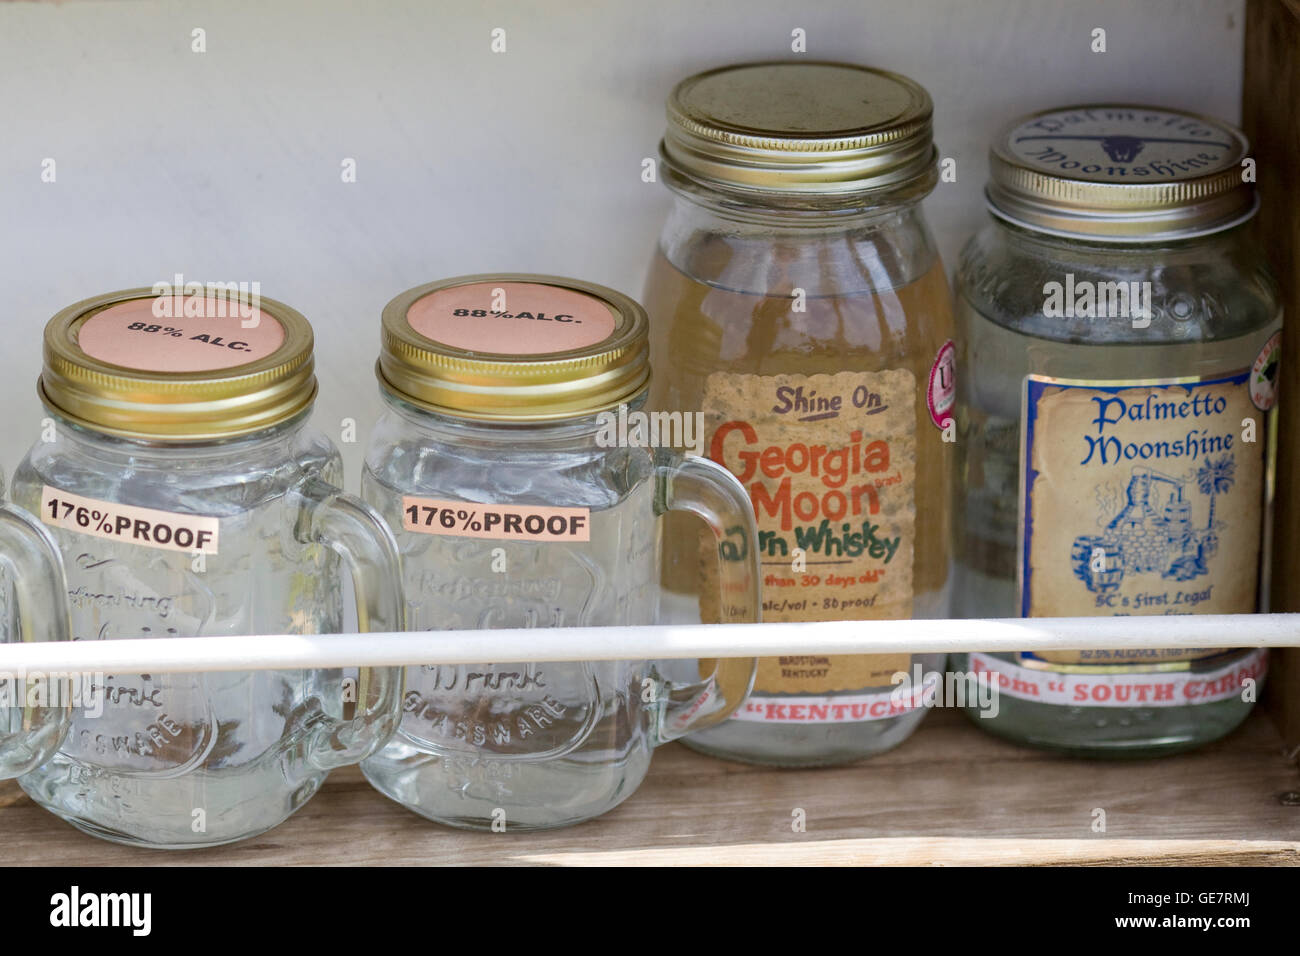 Jars of 176% proof Moonshine whiskey - Stock Image